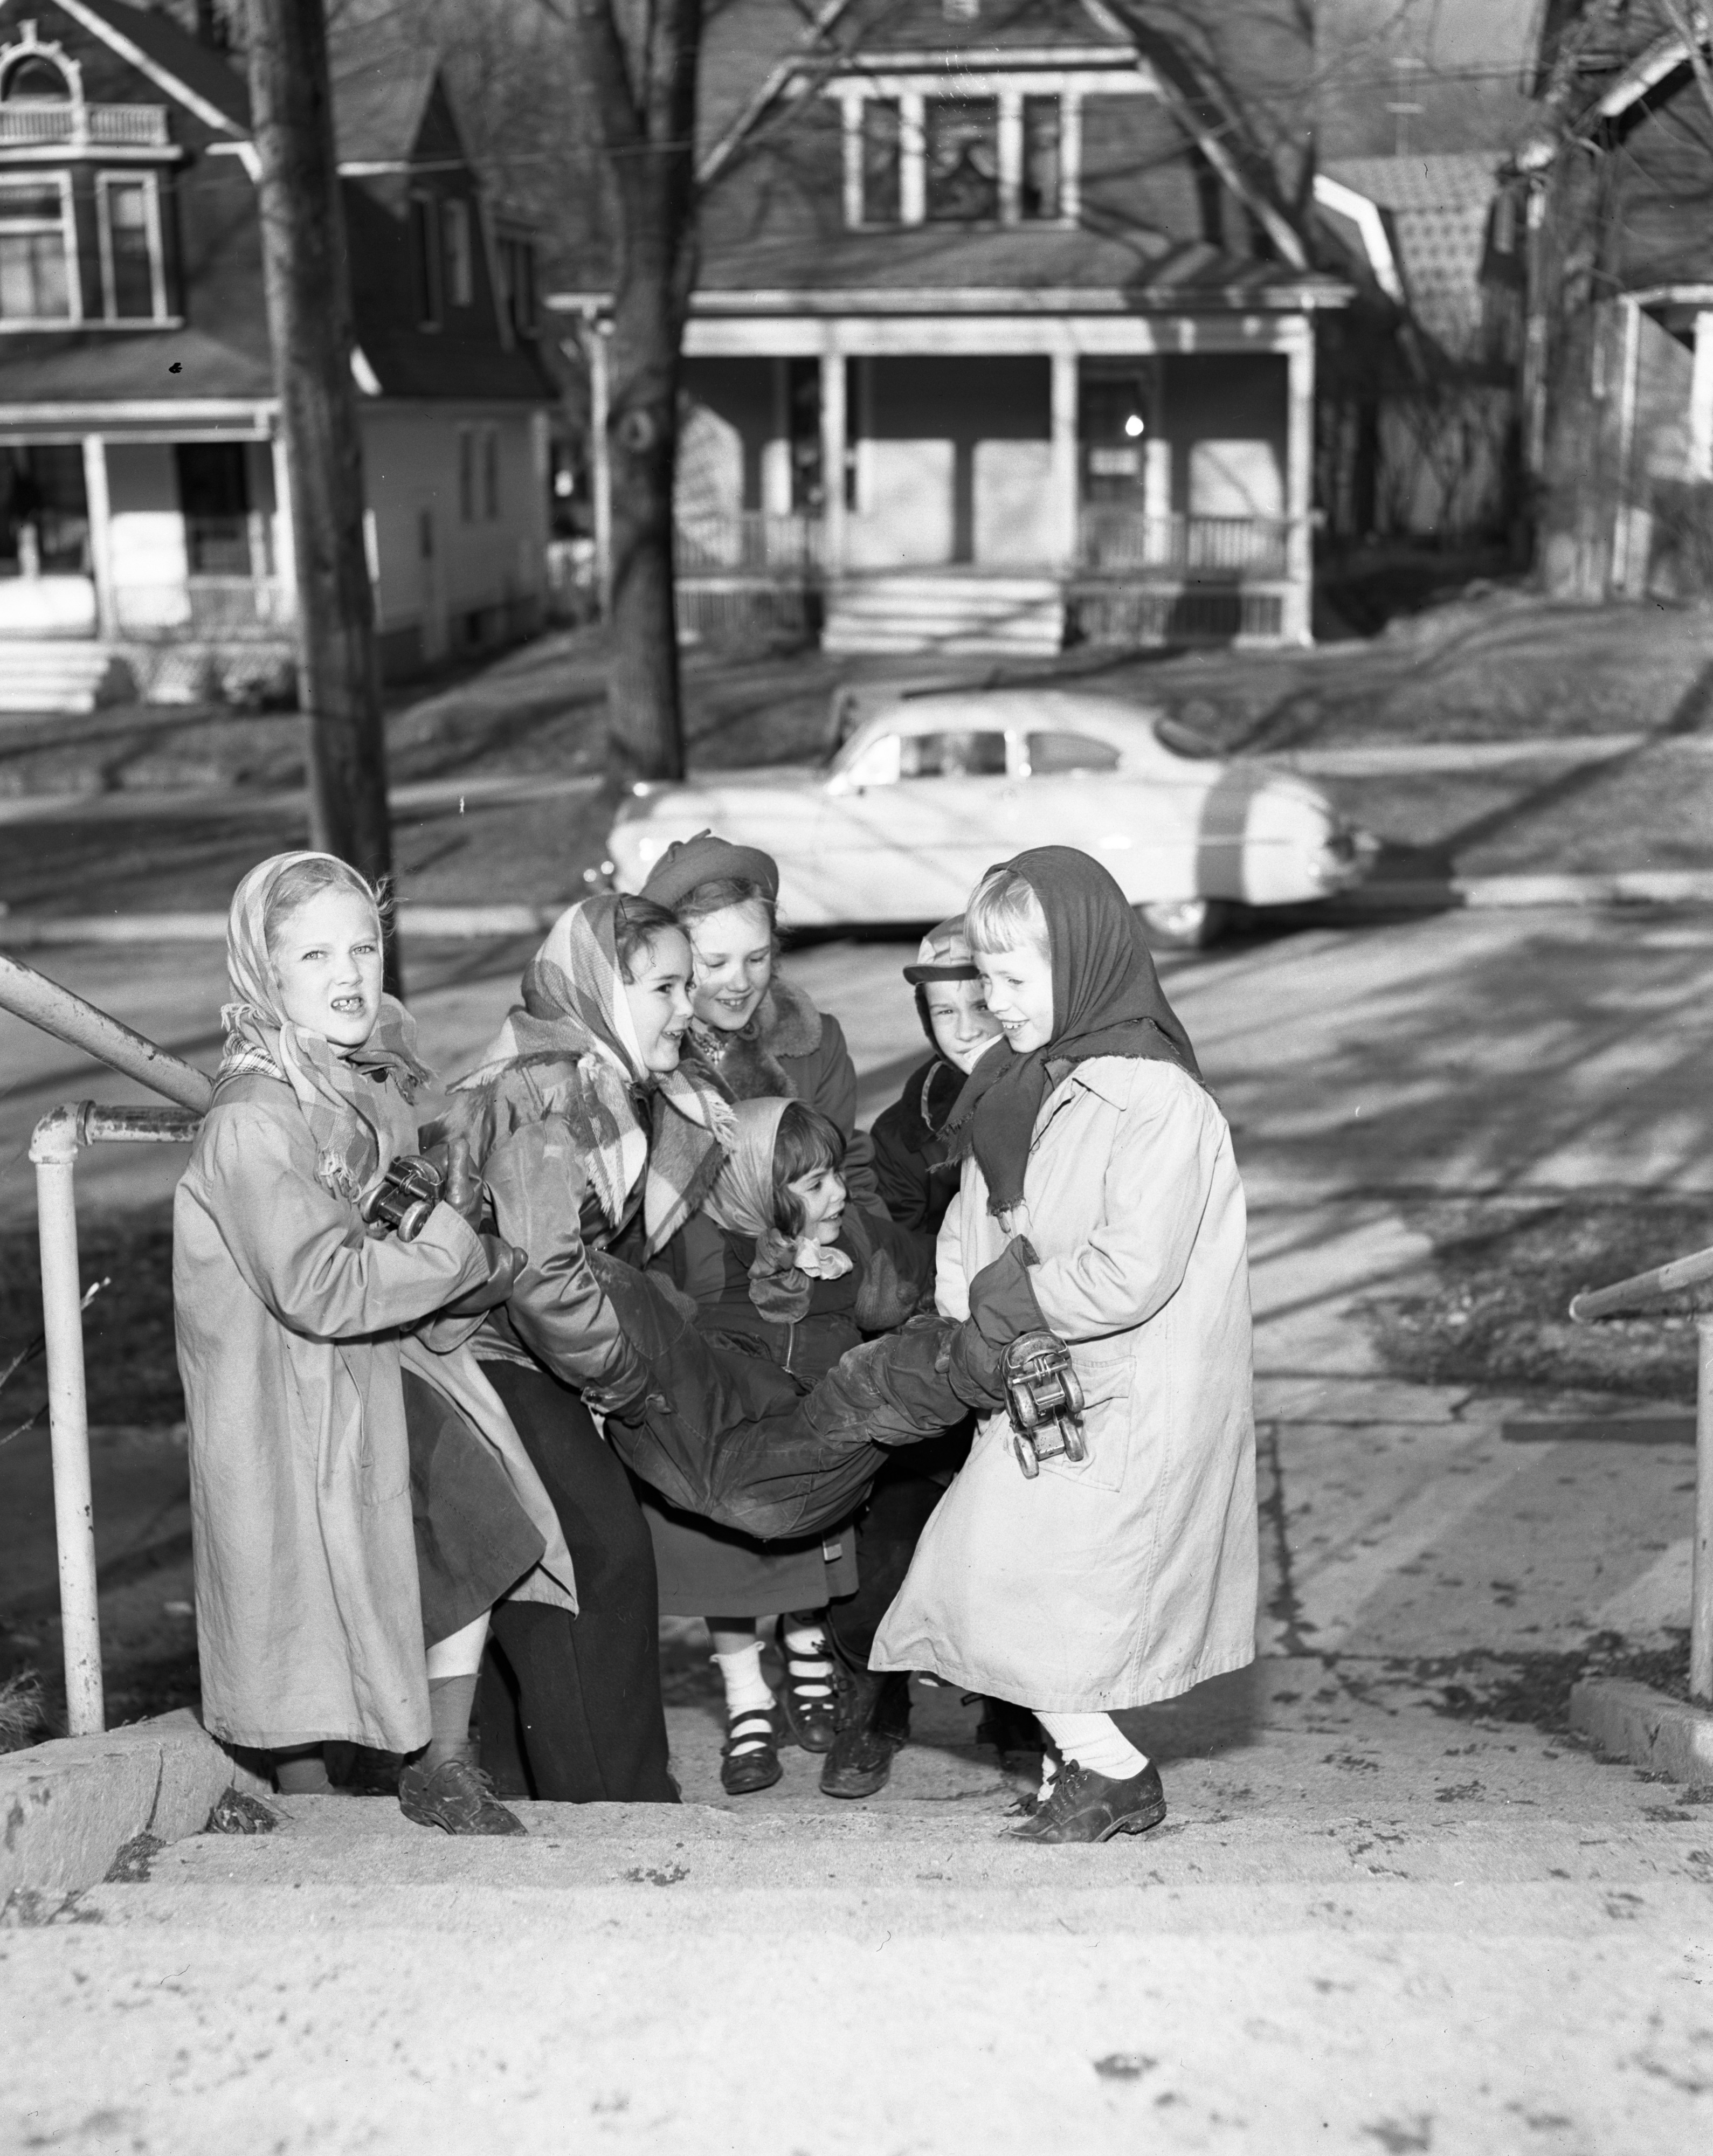 Angell School children carry playmate with rollerskates up the steps, January 1951 image